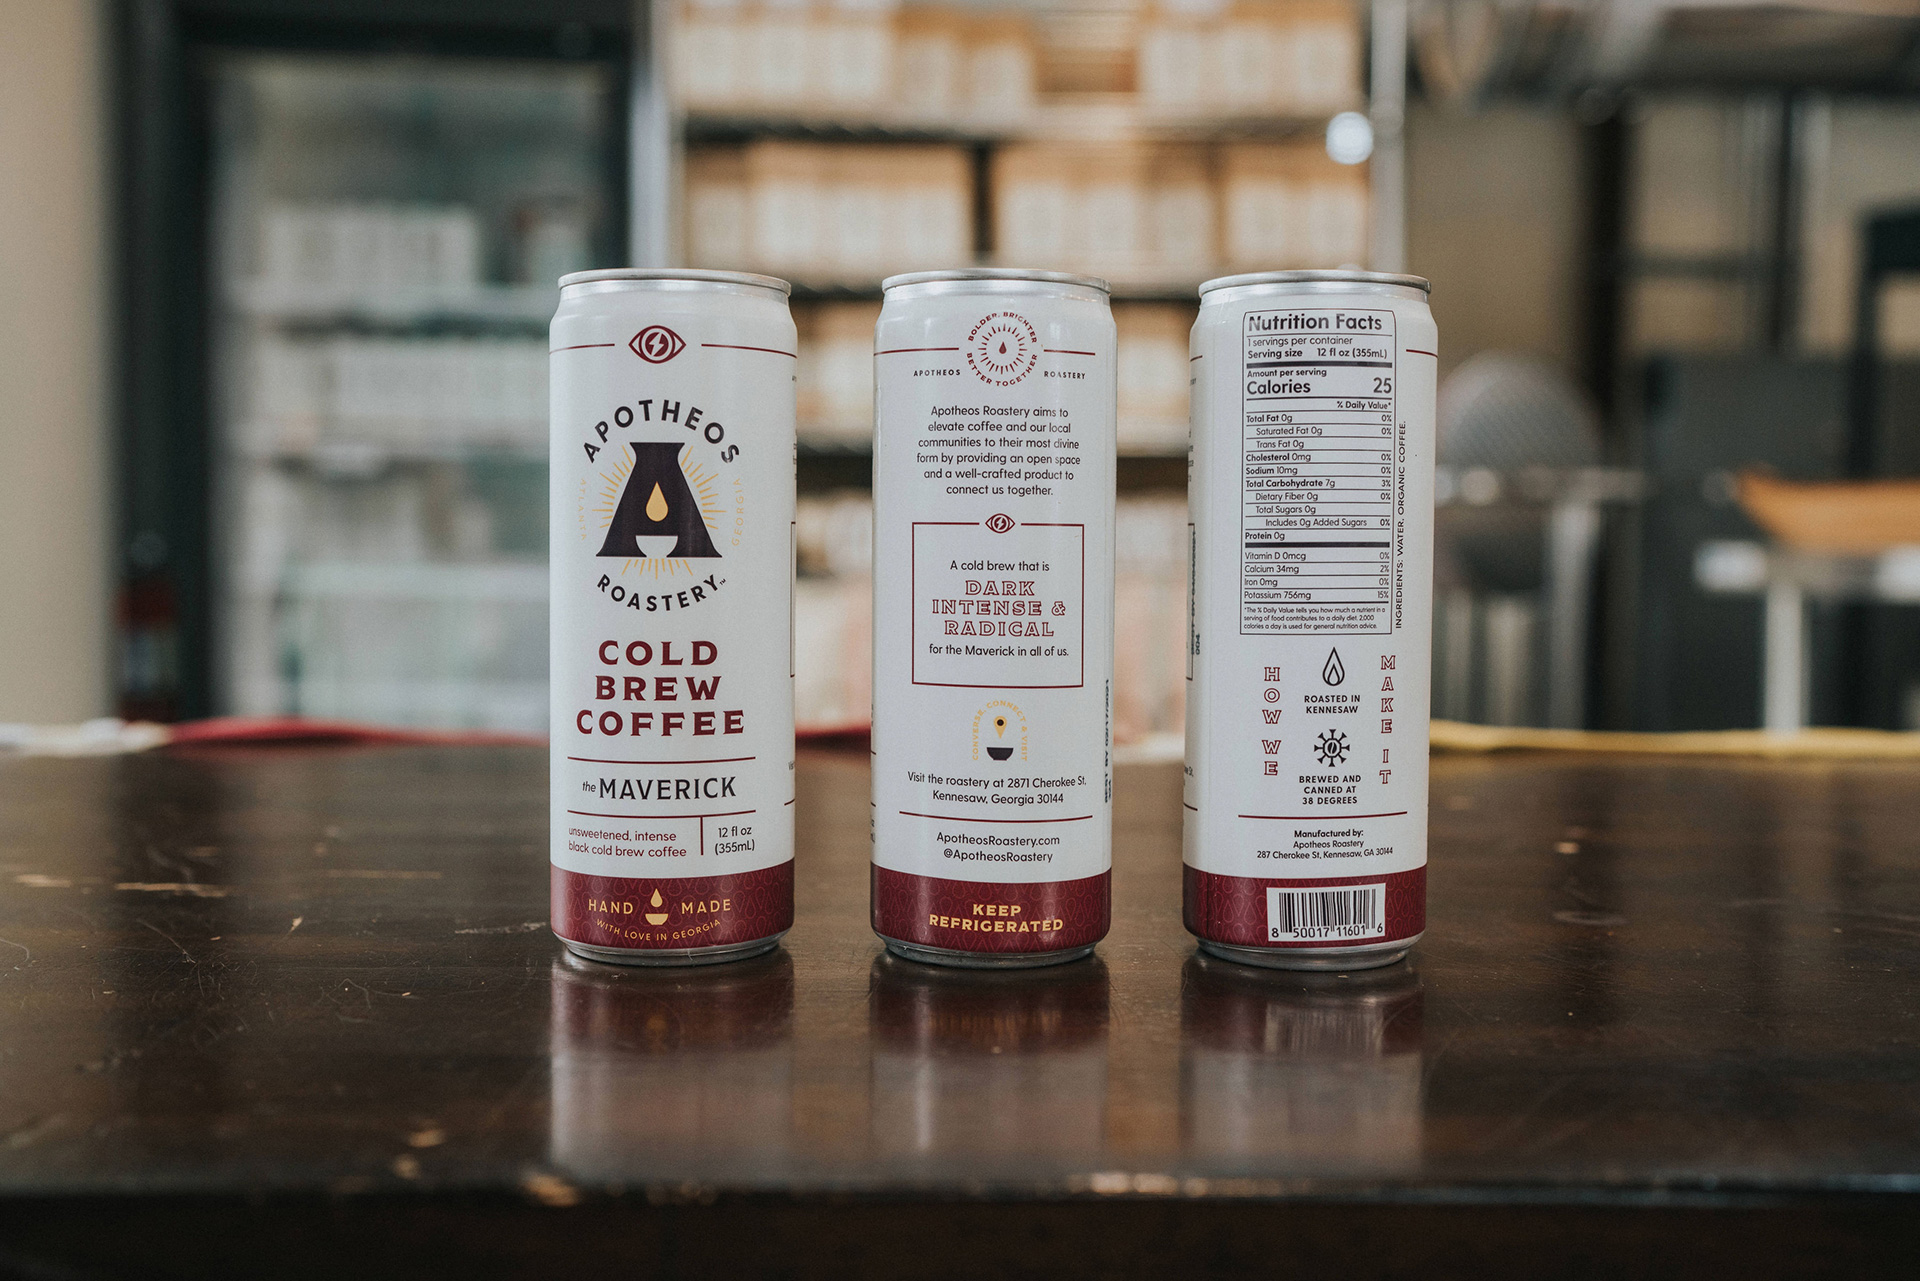 Cold brew coffee packaging design for Apotheos